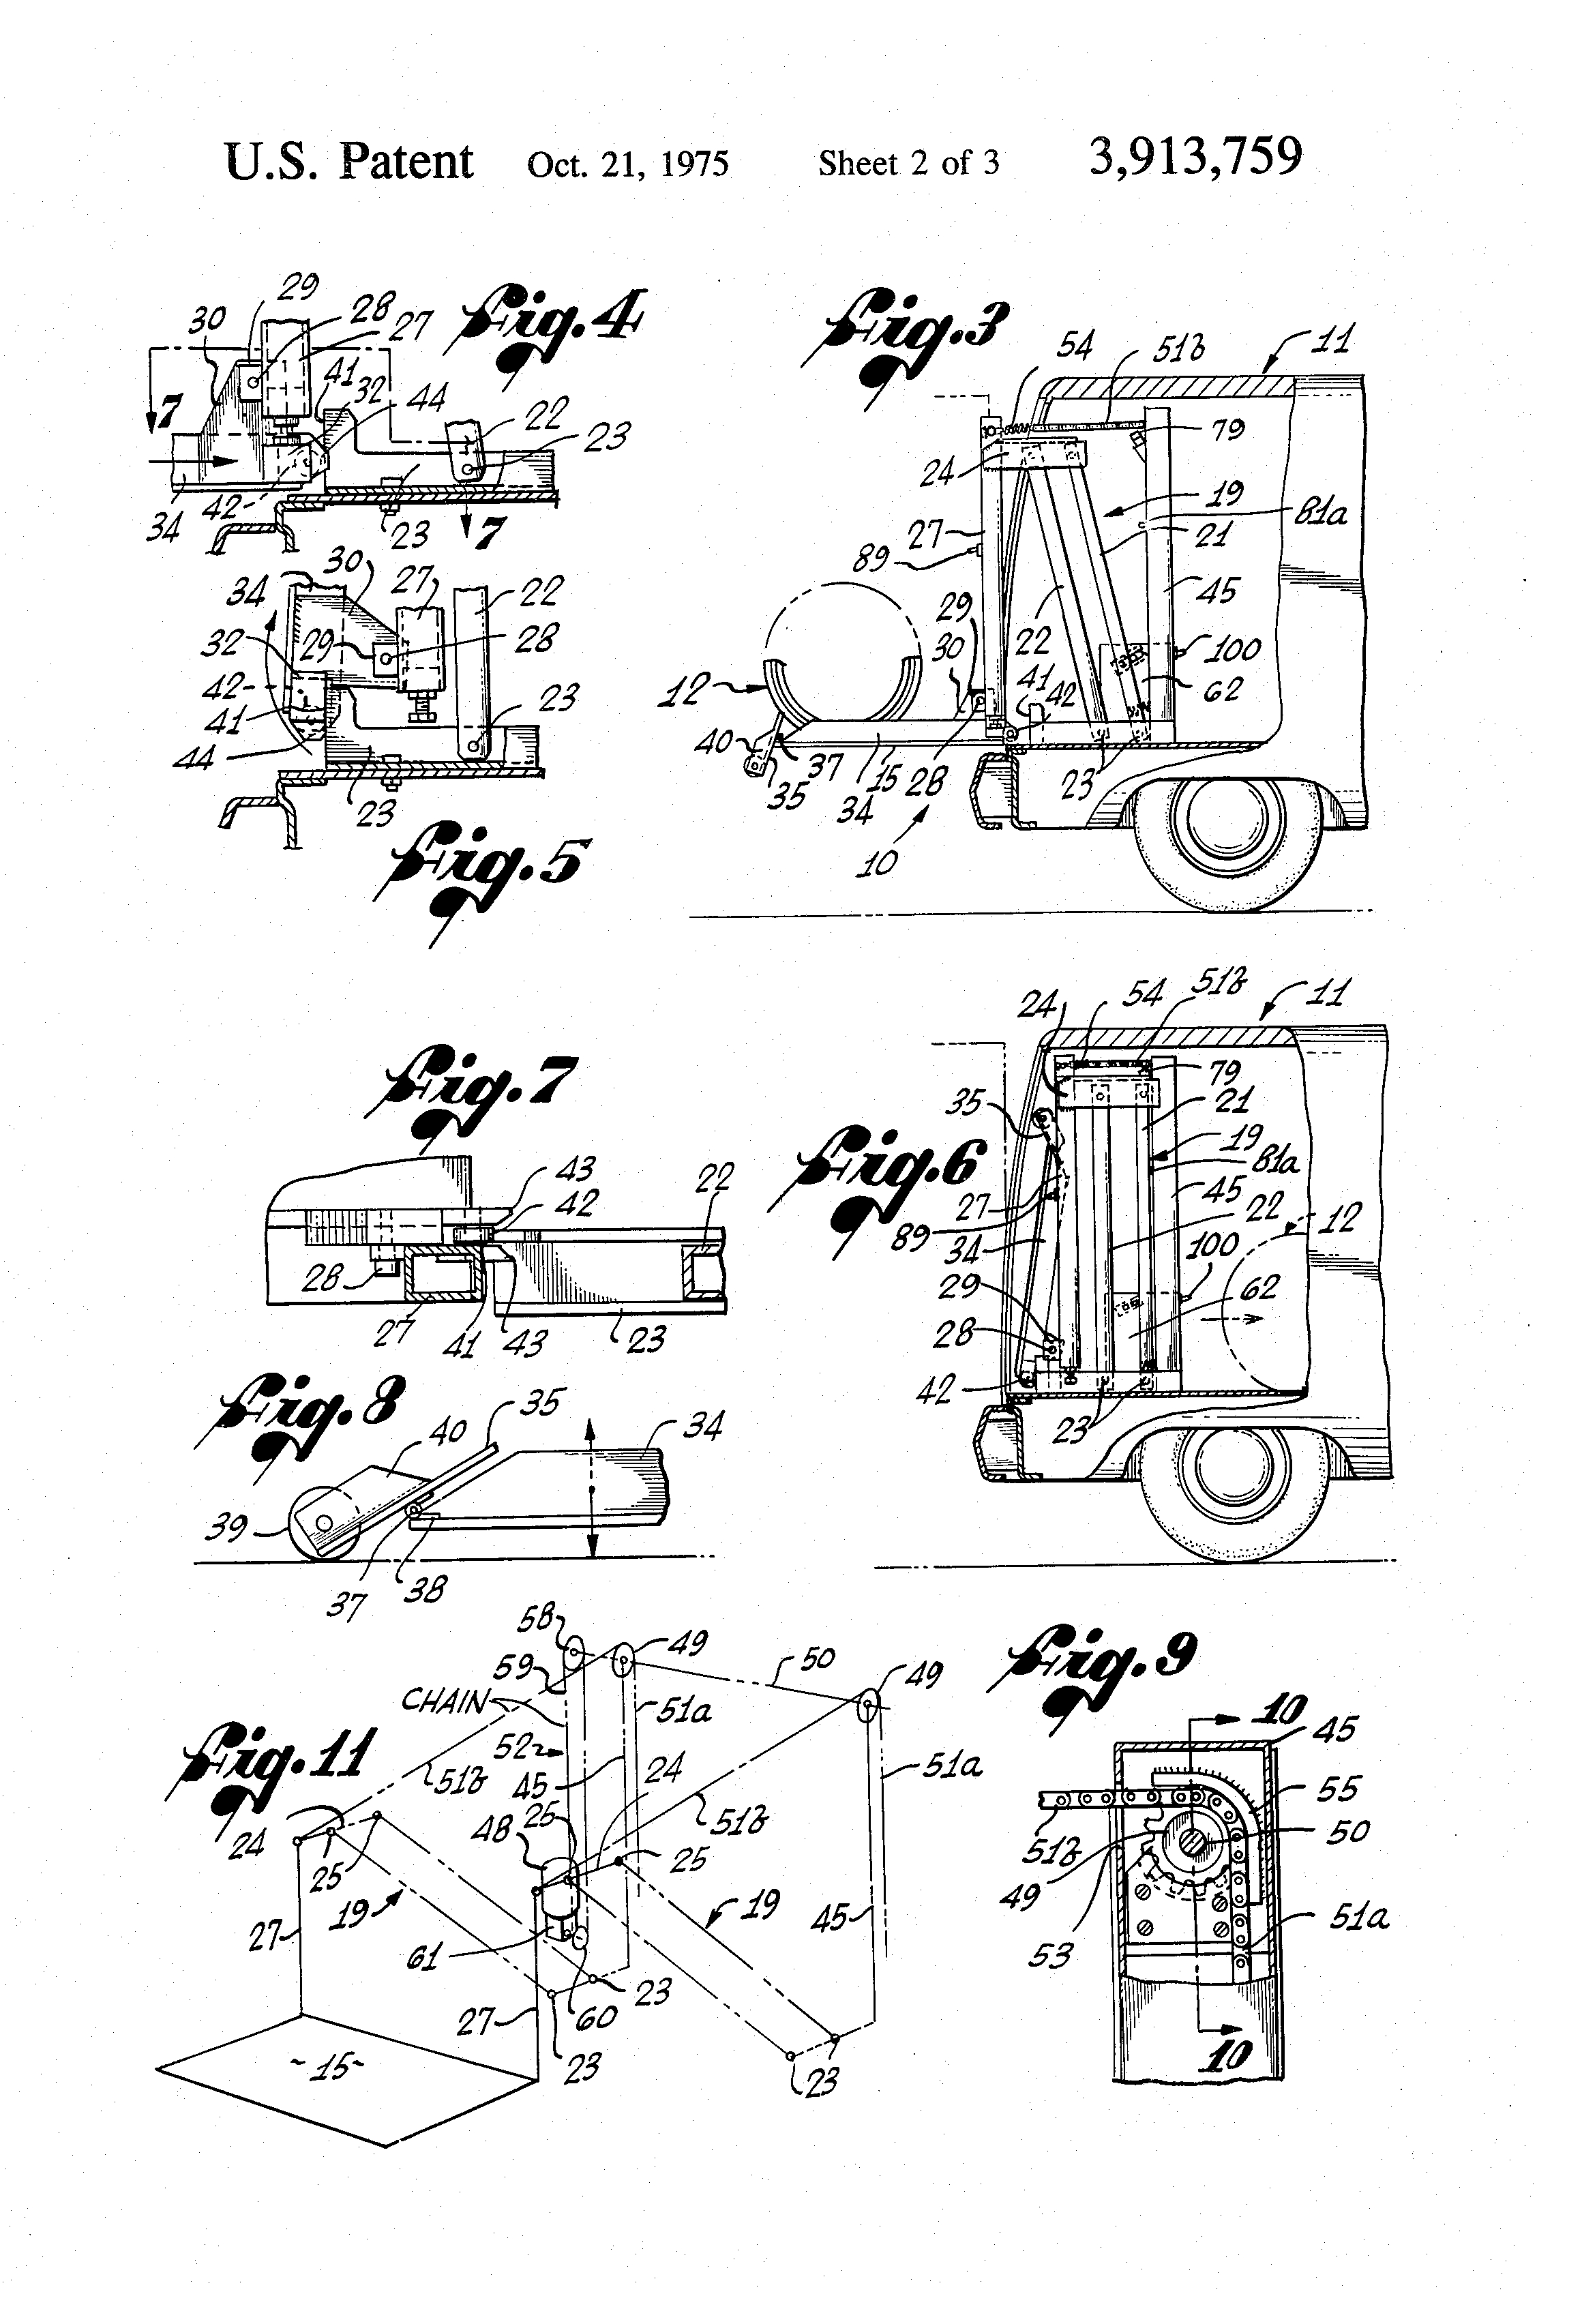 87B26 Wiring Diagrams Ezgo 36 Volt For 12 Volt | ePANEL ... on 36 volt lights, 36 volt battery, 72 volt wiring diagram, 48 volt wiring diagram, 36 volt headlight, 36 volt ezgo wiring, 36 volt heater, 120 volt wiring diagram, 36 volt tools, 36 volt parts, ford taurus coolant diagram, 36 volt generator, ezgo 36 volt diagram, 36 volt club car batteries, 36 volt alternator, 36 volt fuse, 36 volt circuit, 36 volt relay, 6 volt wiring diagram, 110 volt wiring diagram,